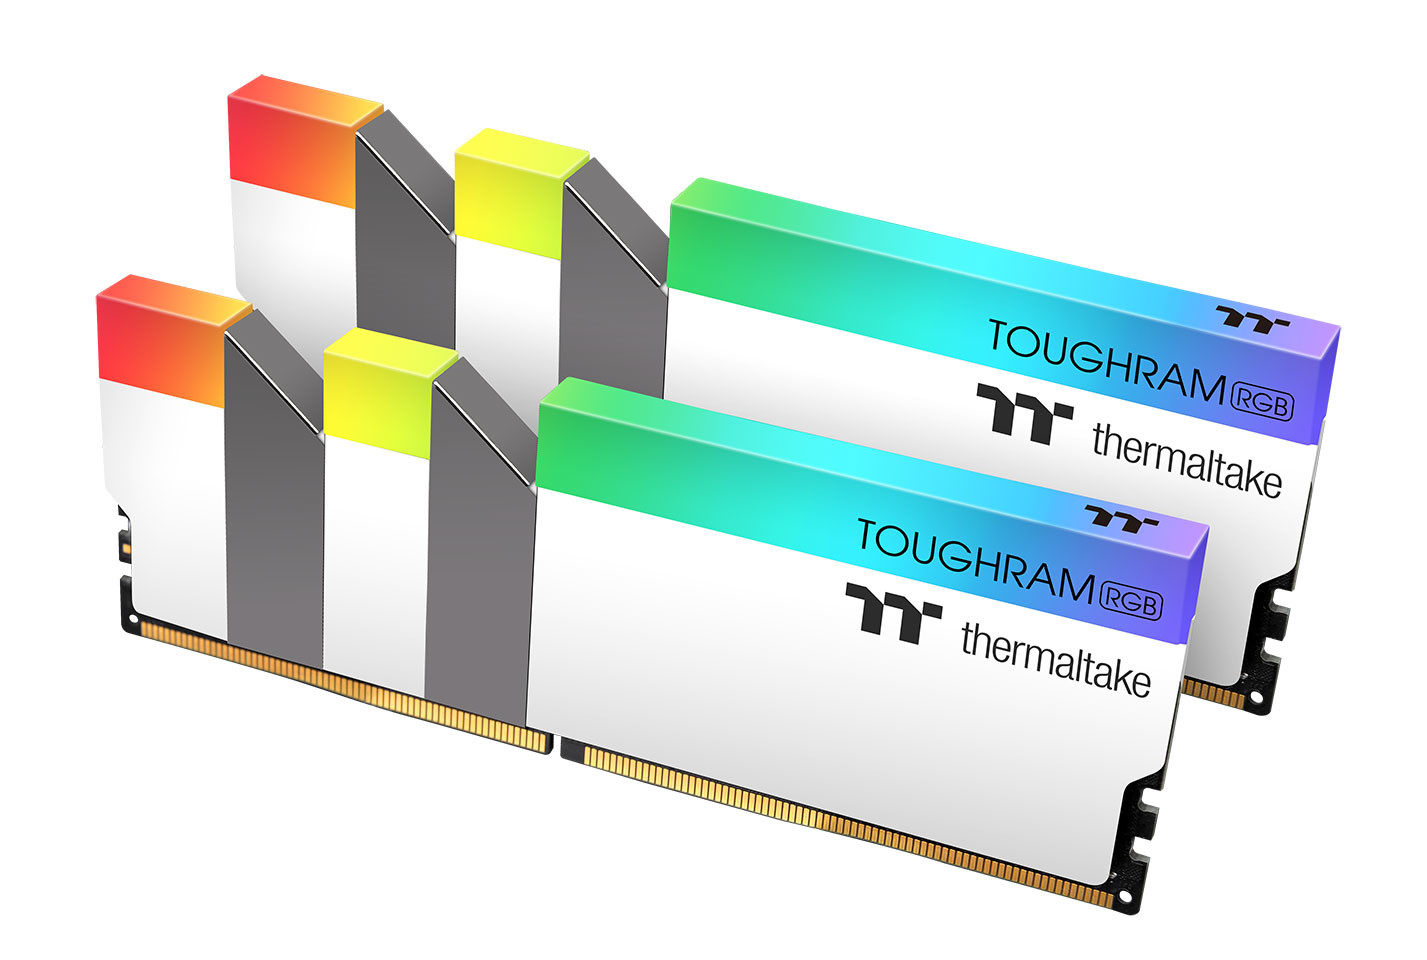 Image 1 : Thermaltake décline sa DRAM Toughram RGB en version blanche